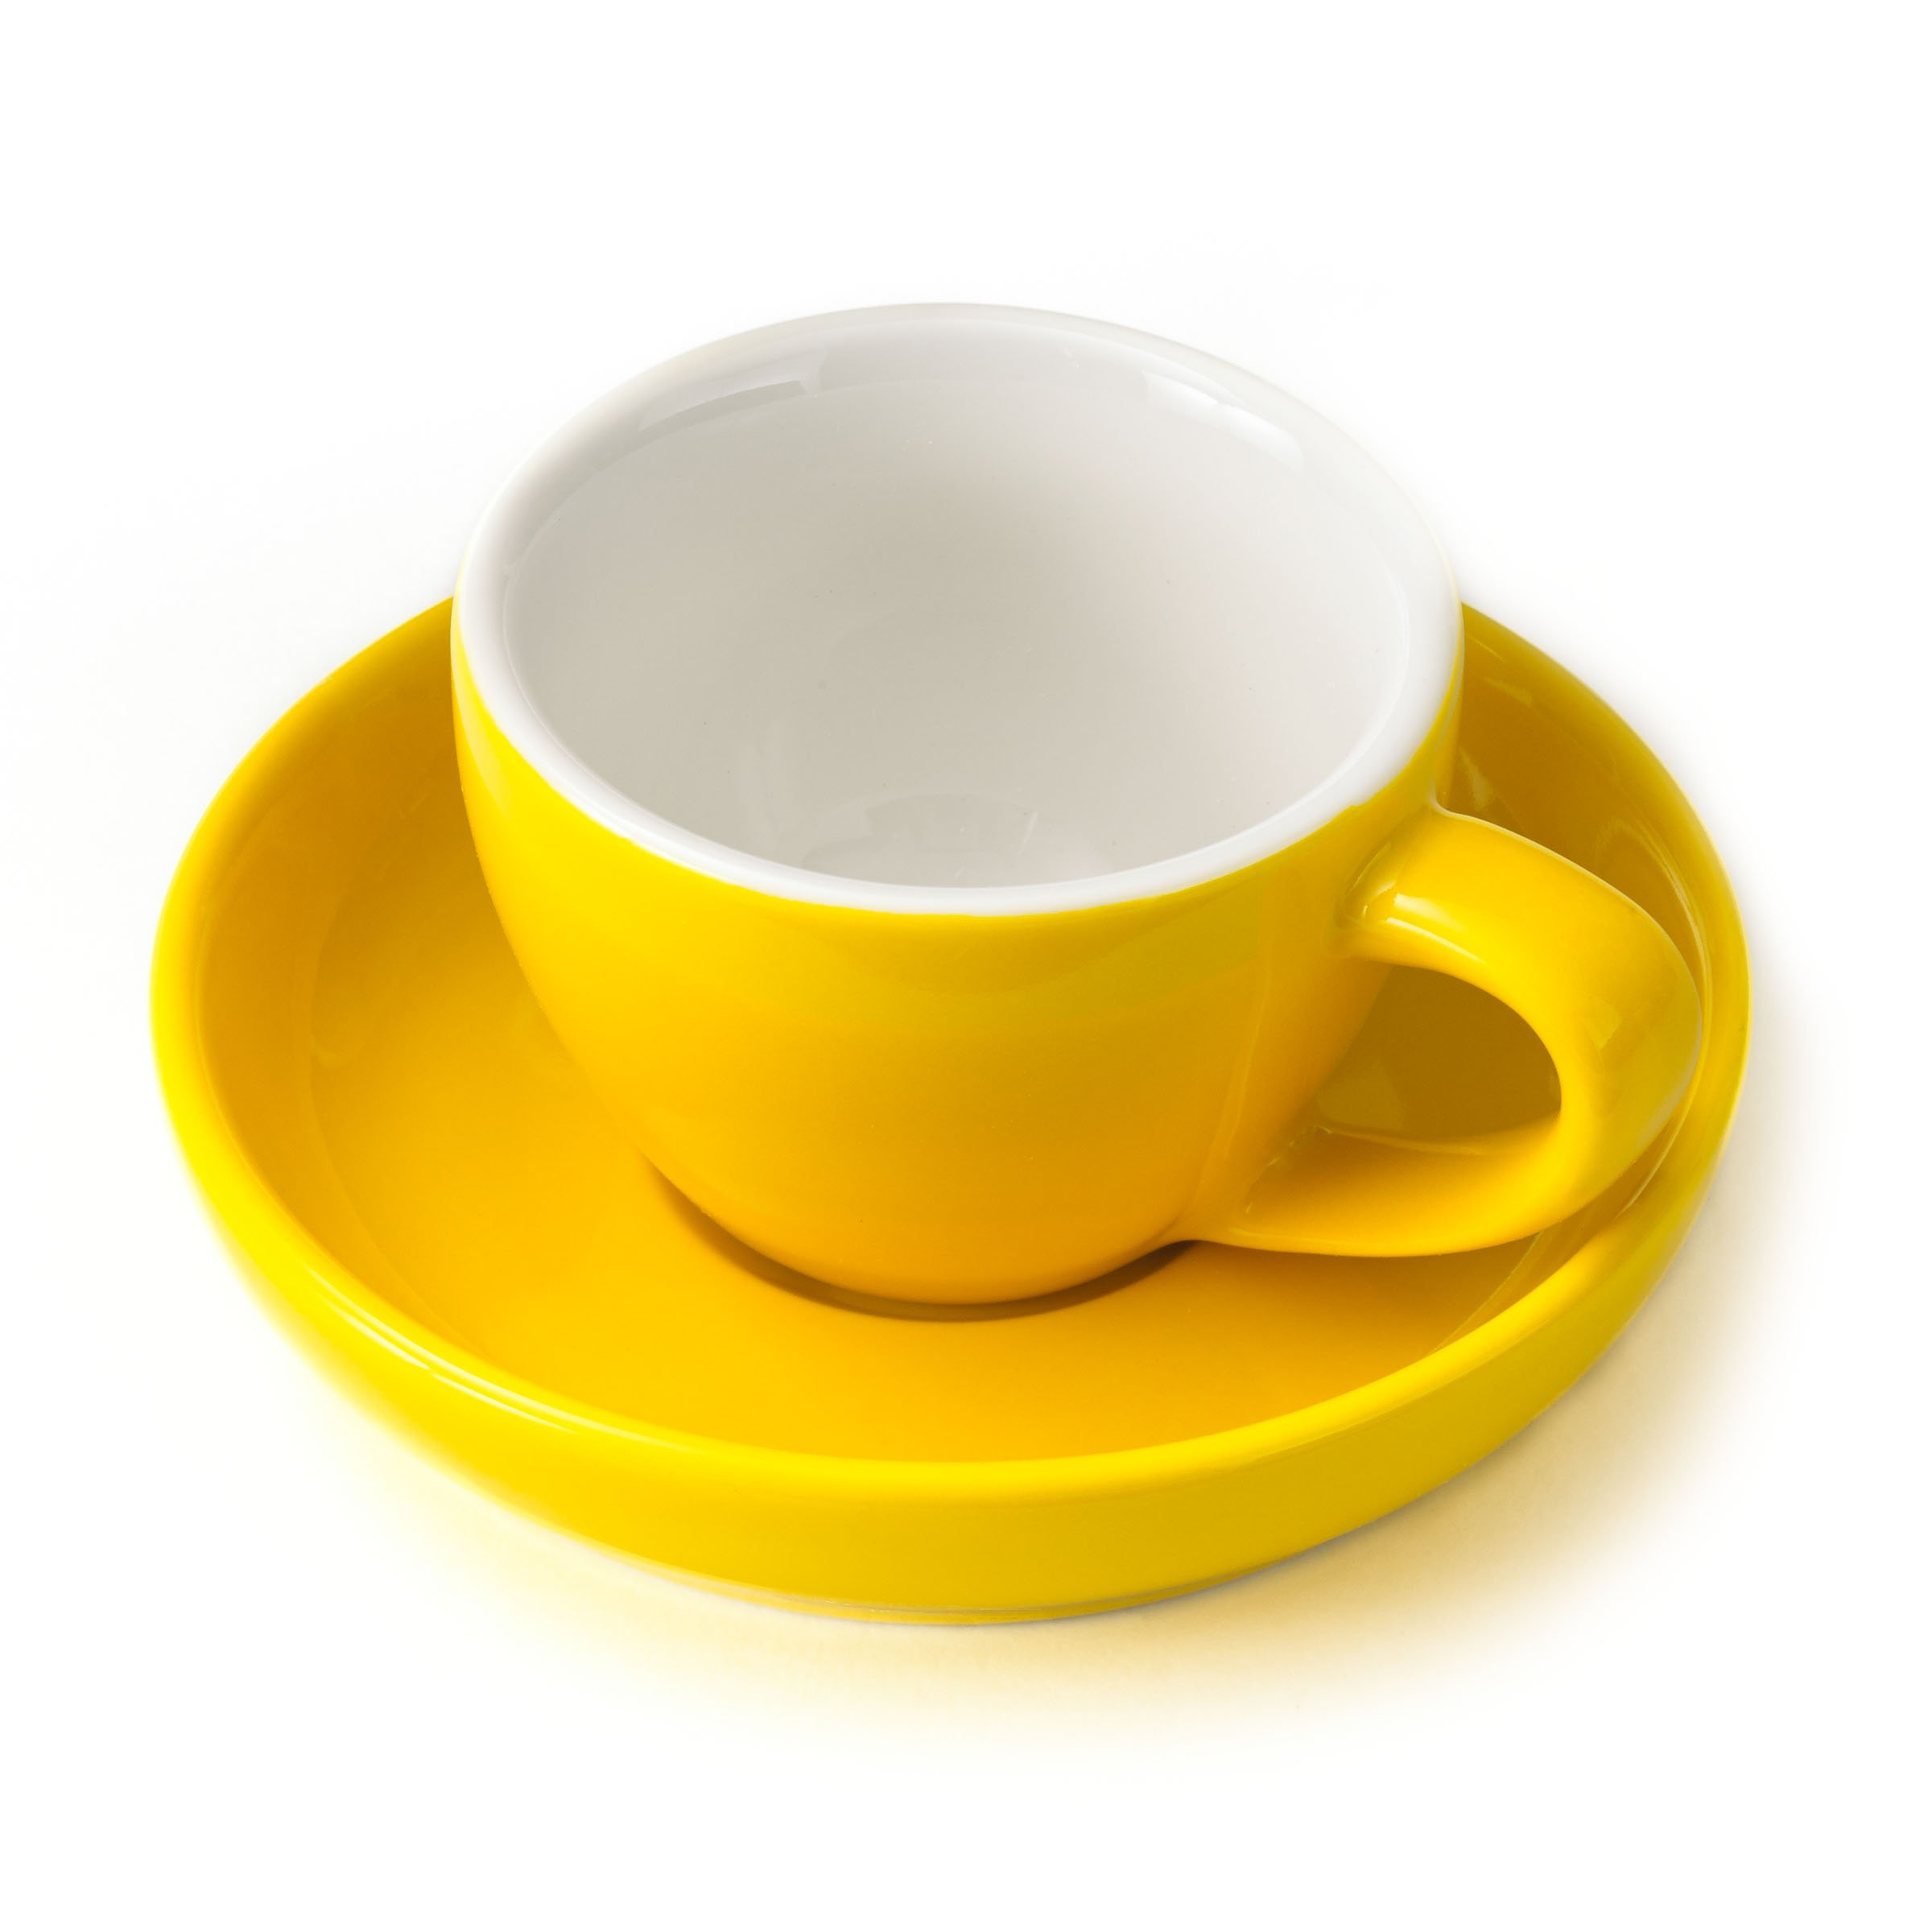 Espresso Cup and Saucer - (1 PC Set) 3-Ounce Demitasse for Coffee, Vibrant Color Choices, Durable Porcelain (Sunflower Yellow)